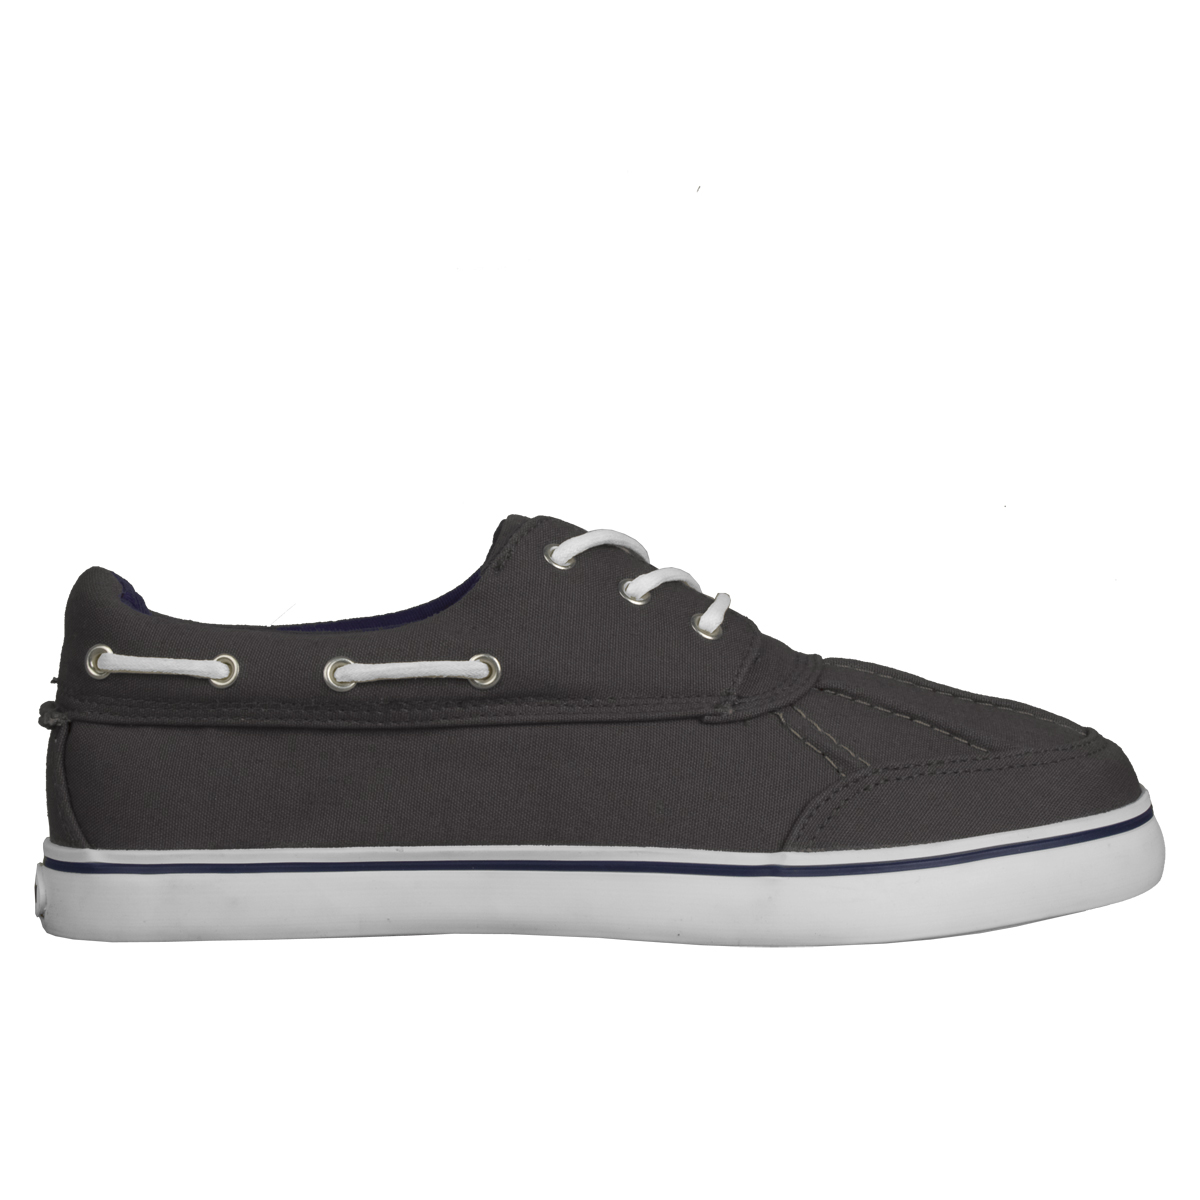 Lowest Price On Mens Boat Shoe